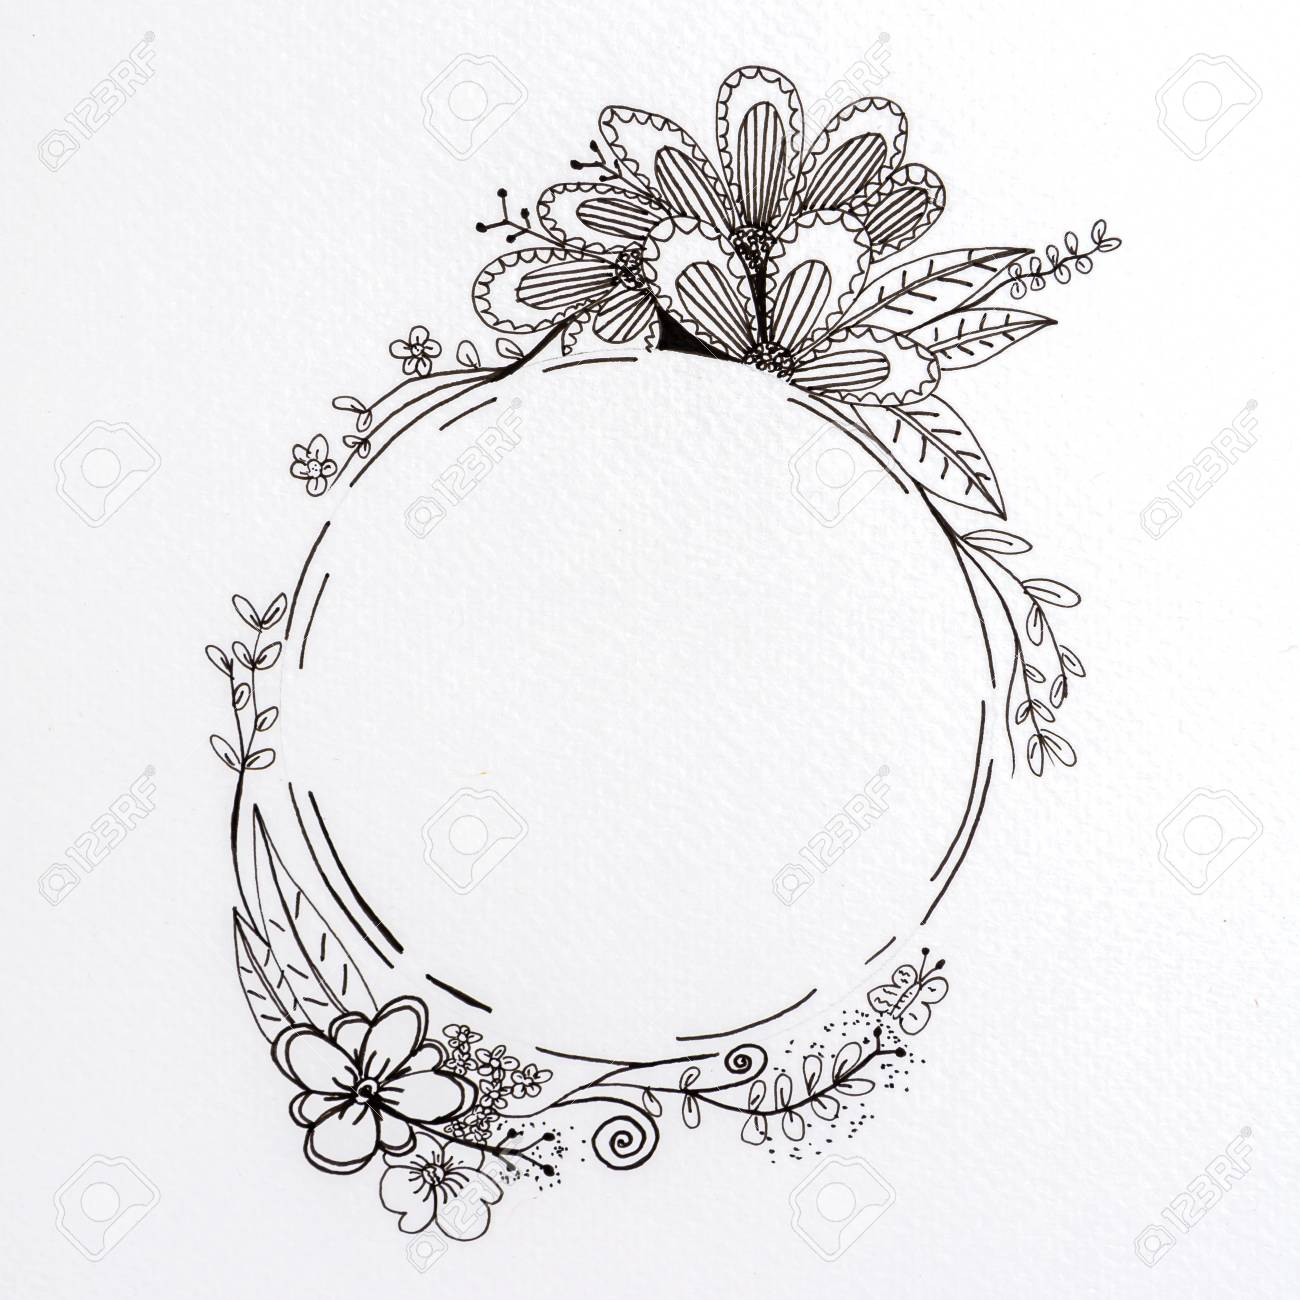 Drawing flower with sketch on white background stock photo 100861659